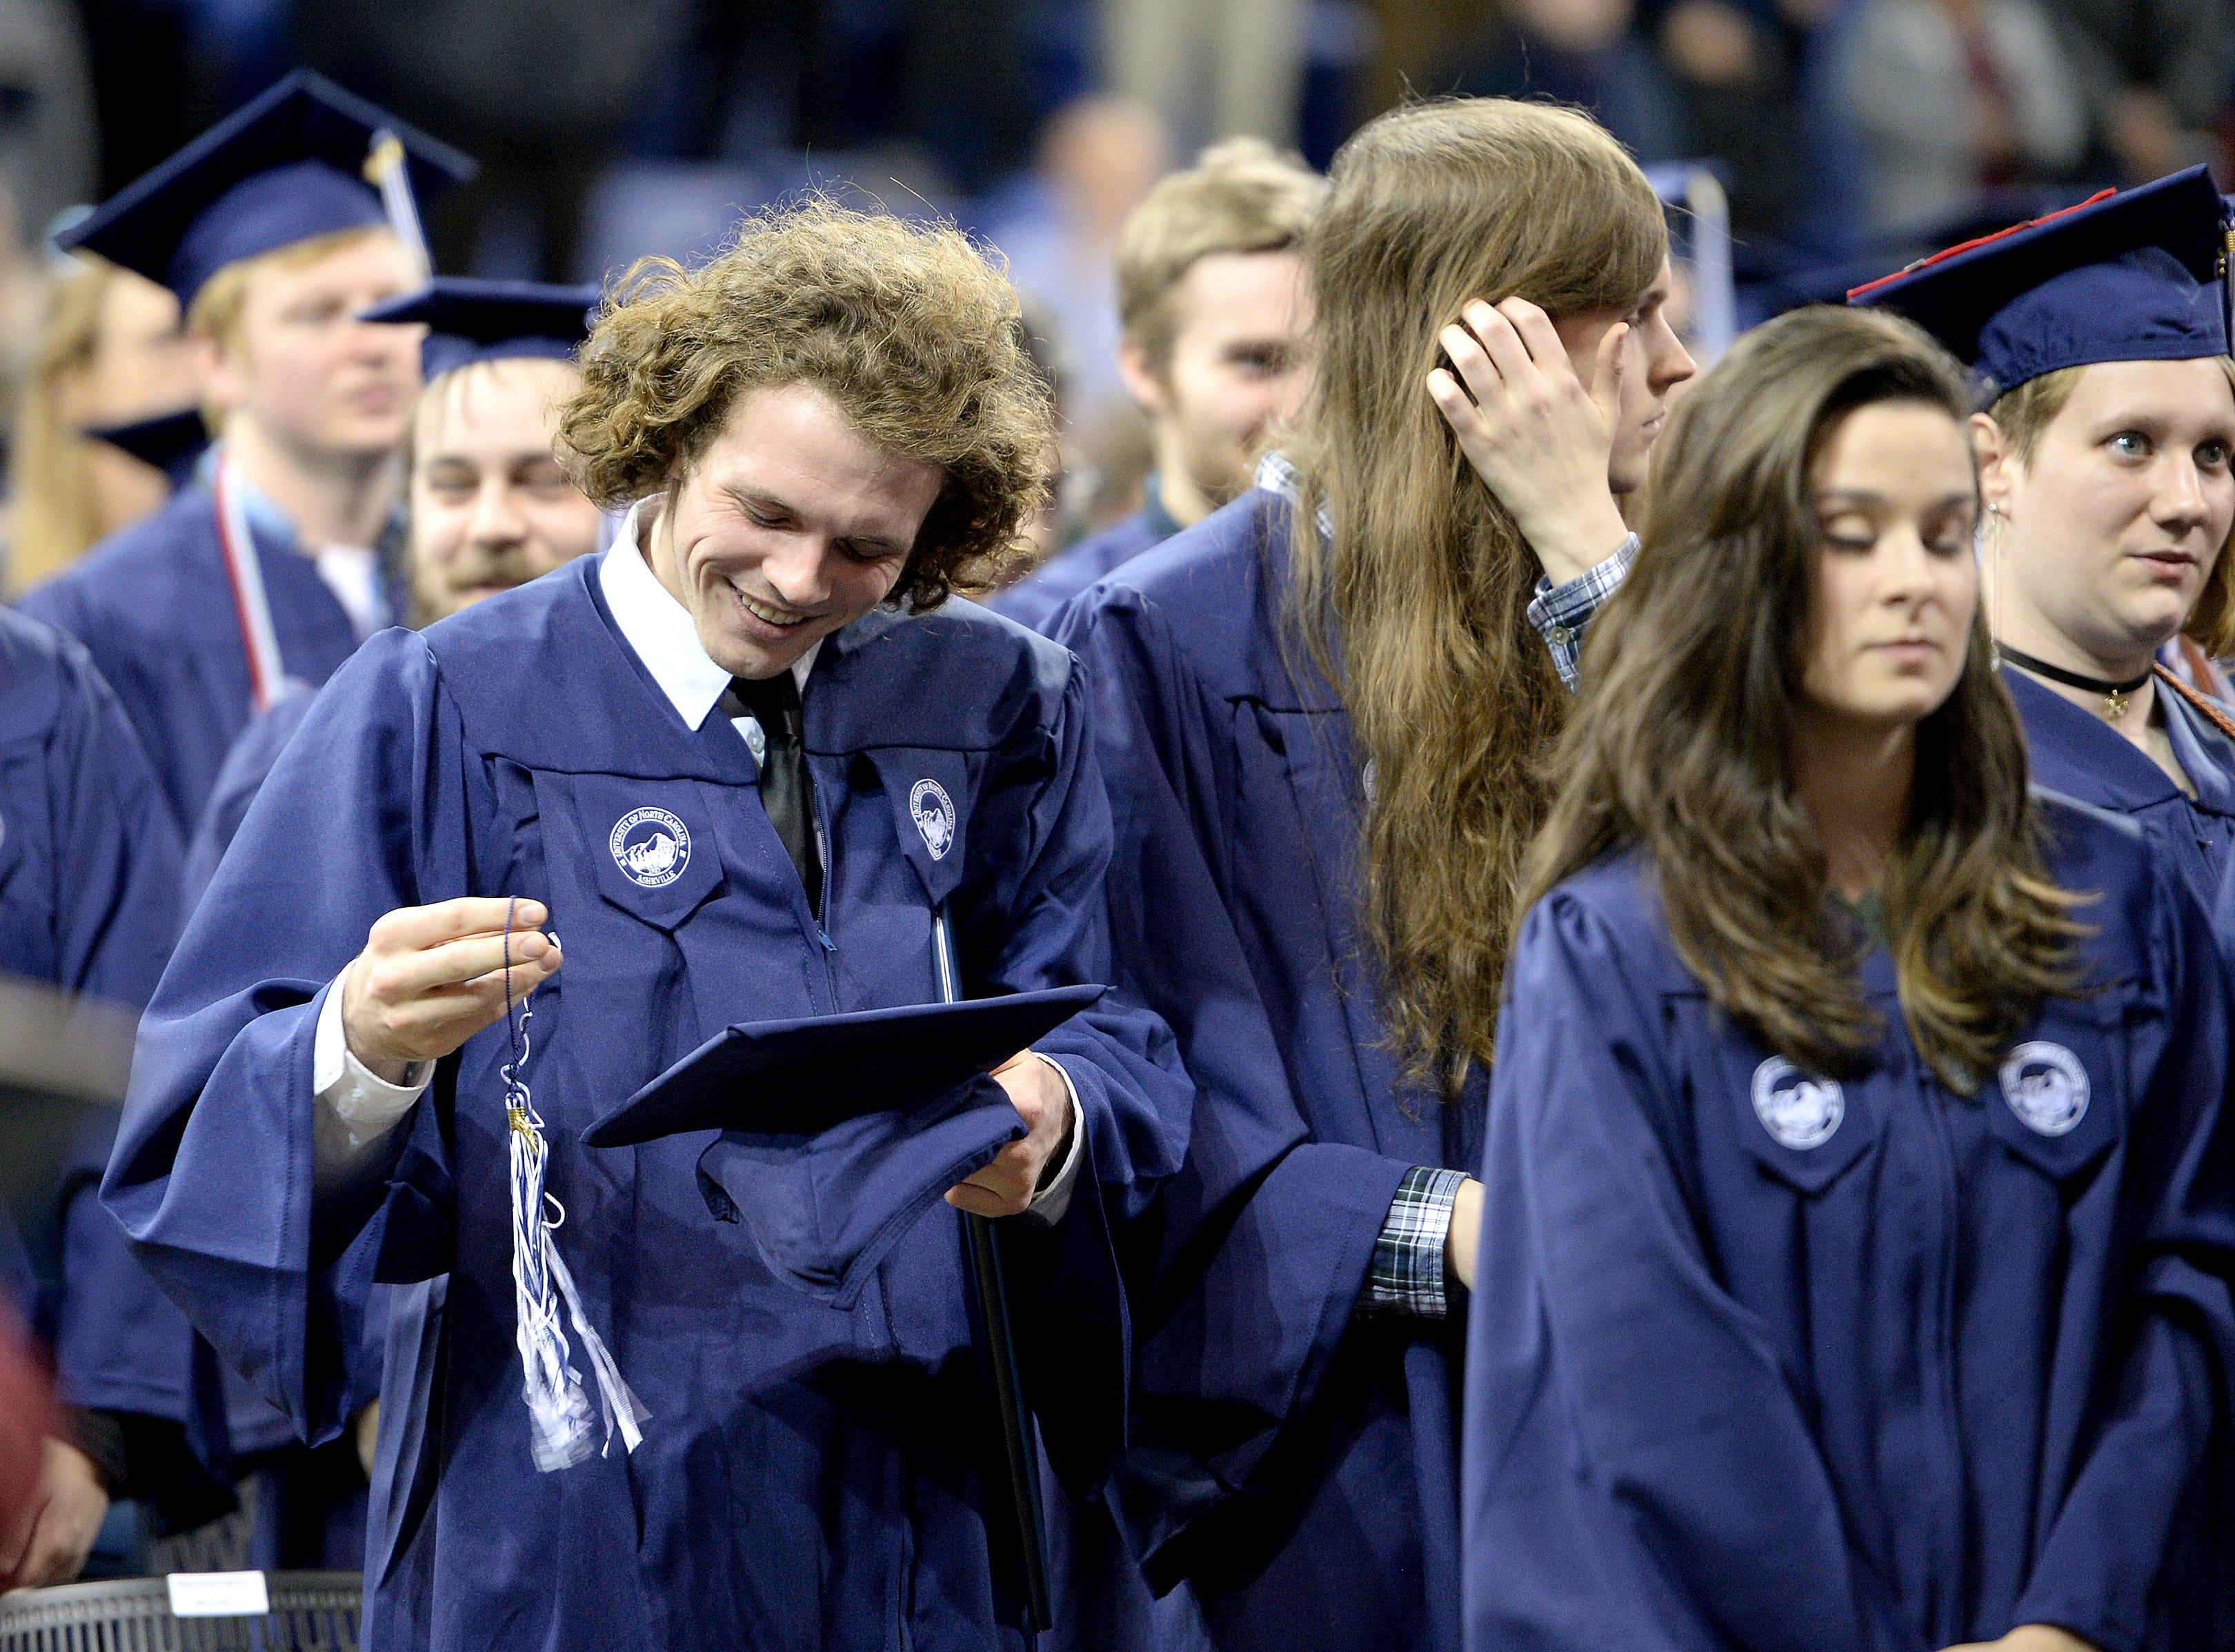 UNC Asheville held their winter commencements graduating more than 200 students at Kimmel Arena on Dec. 14, 2018.